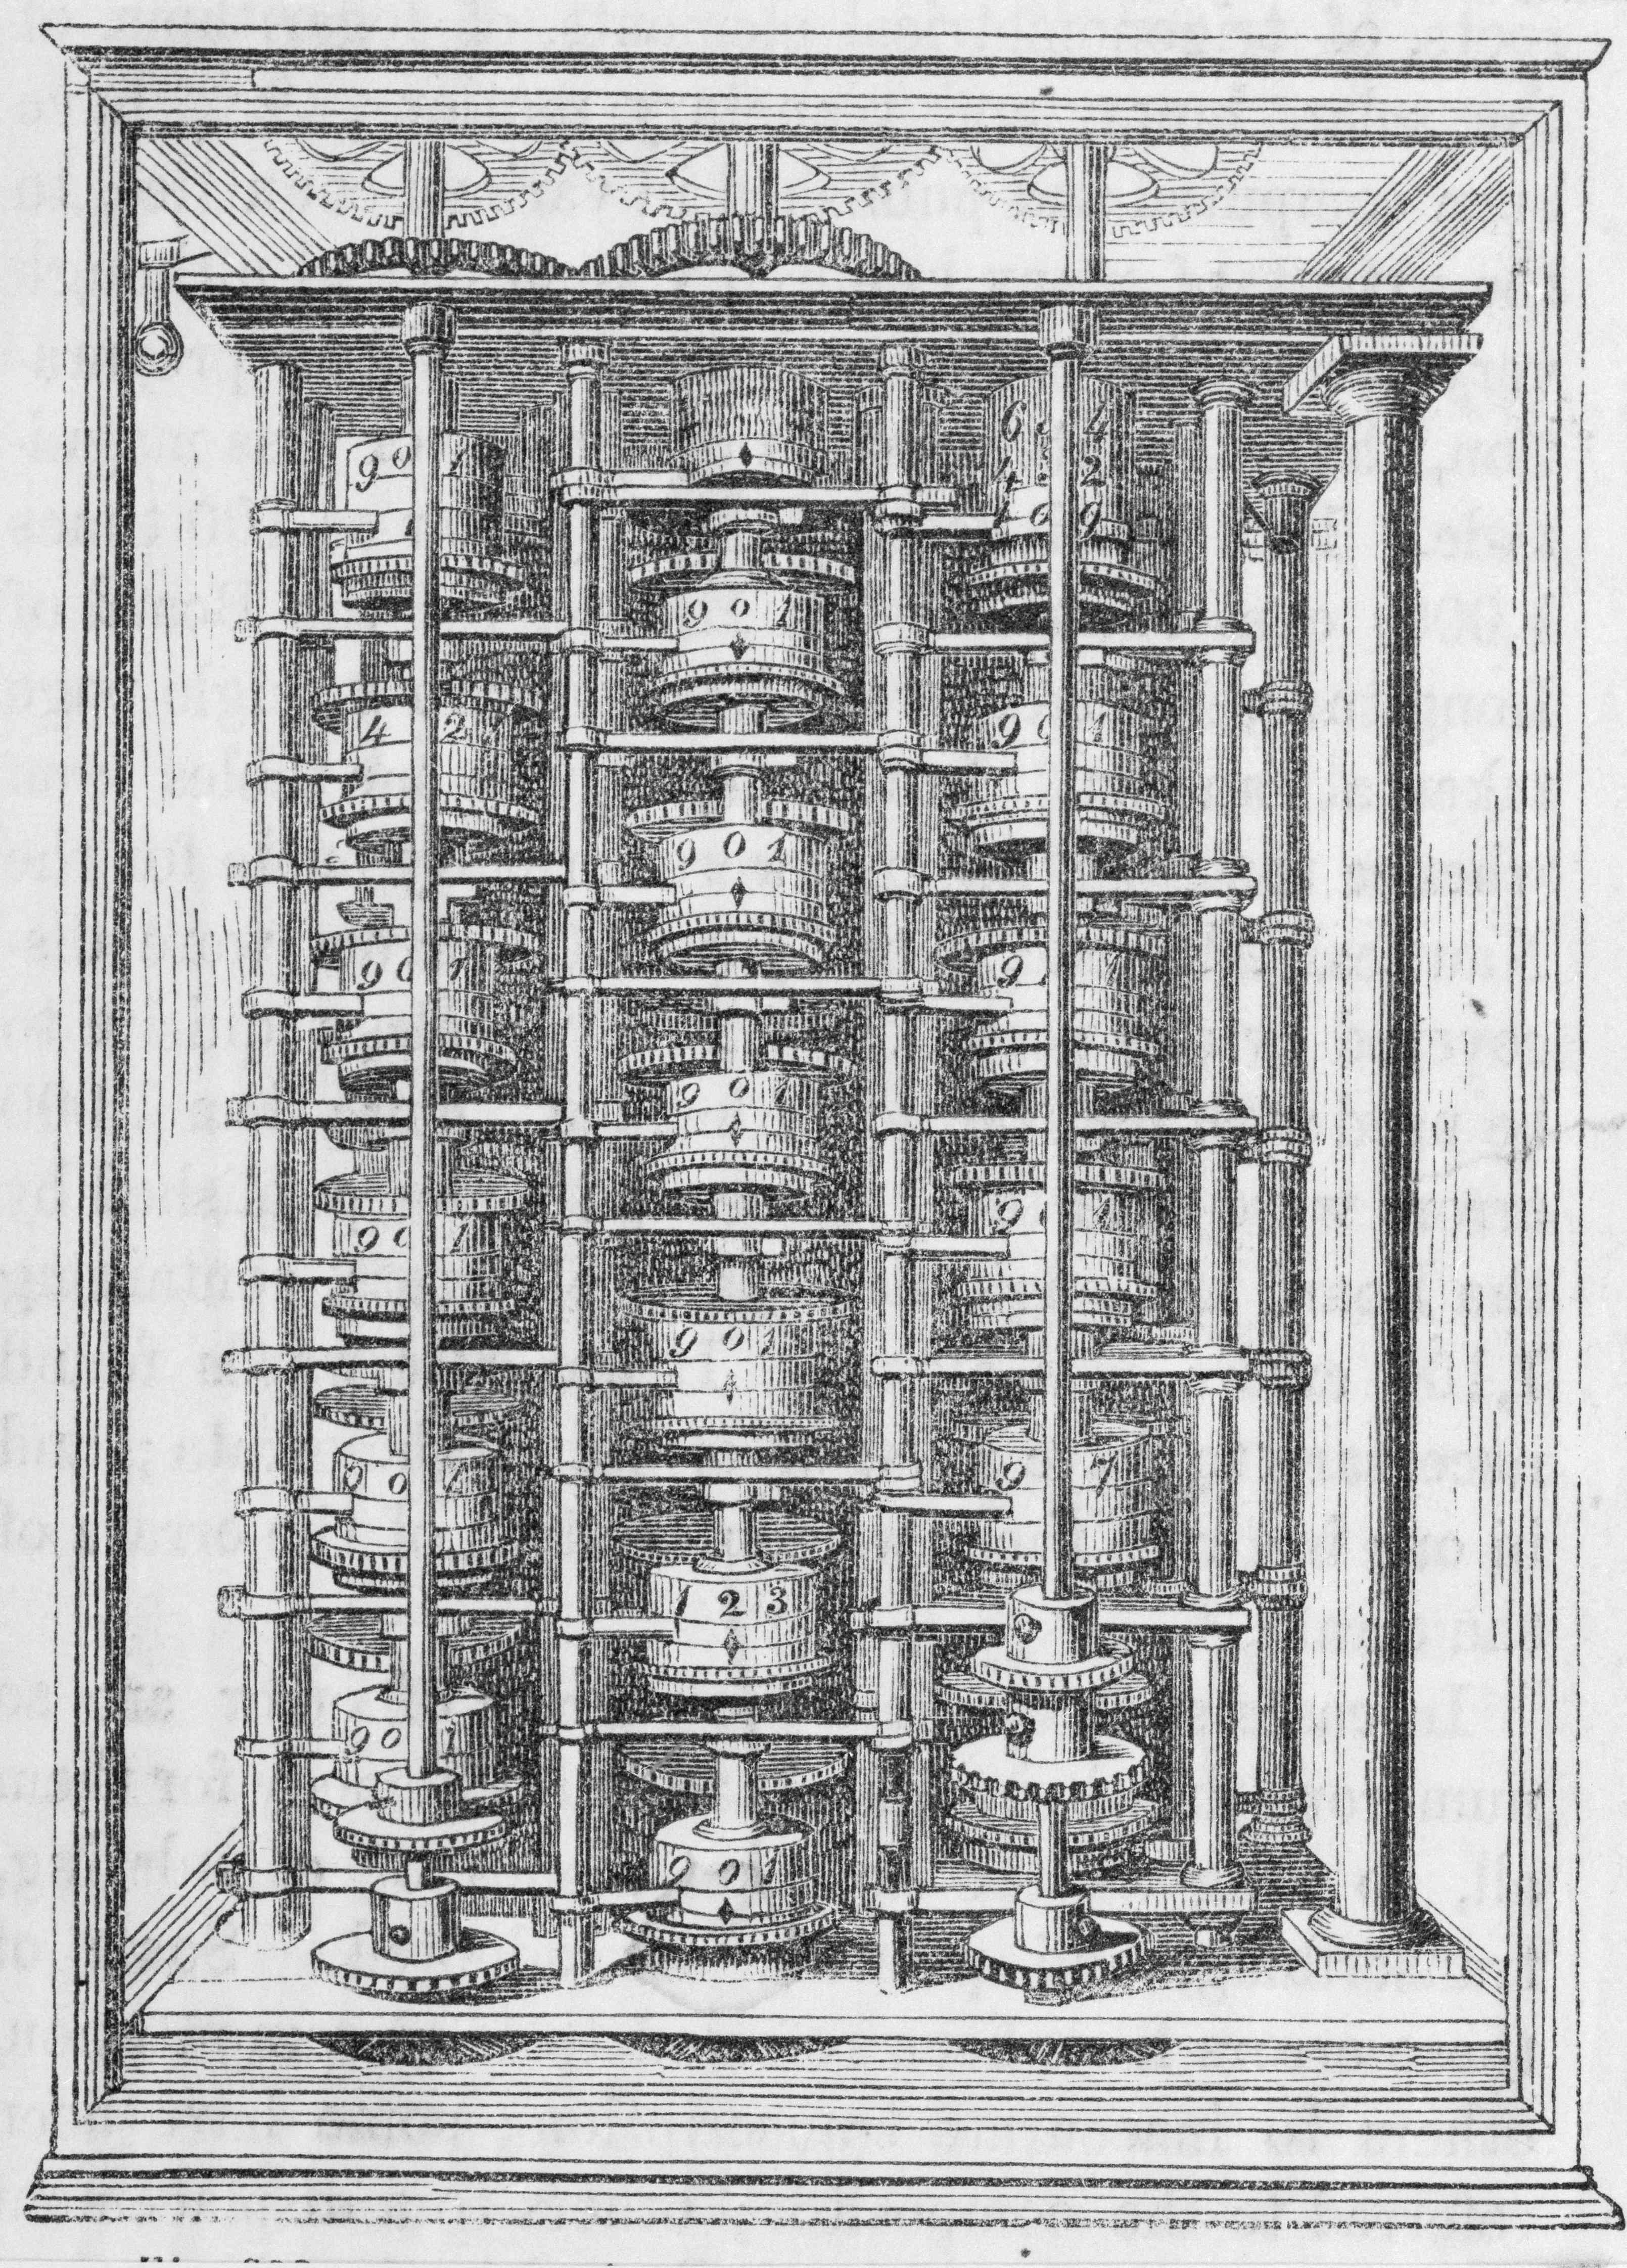 Illustration Charles Babbage's Difference Engine, a mechanical digital calculator.